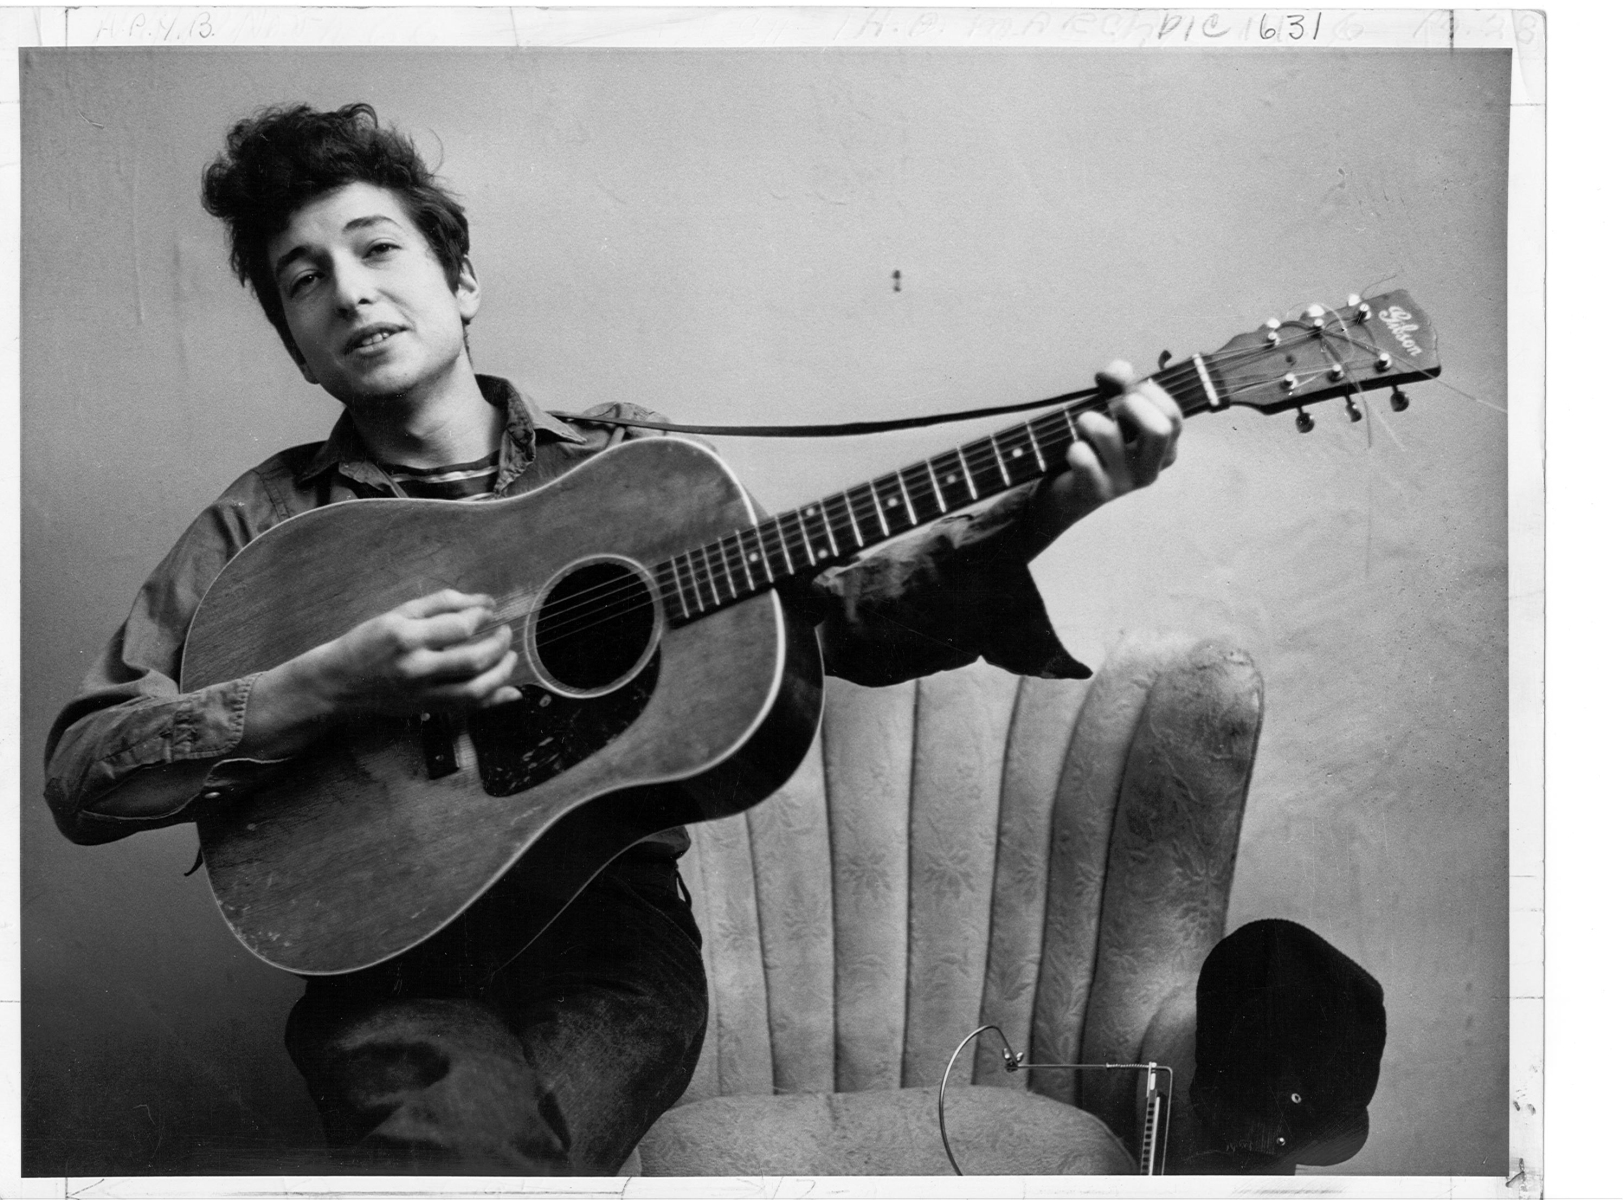 Bob Dylan poses for a portrait with his Gibson Acoustic guitar in September 1961 in New York City, New York. (Photo by Michael Ochs Archives/Getty Images)